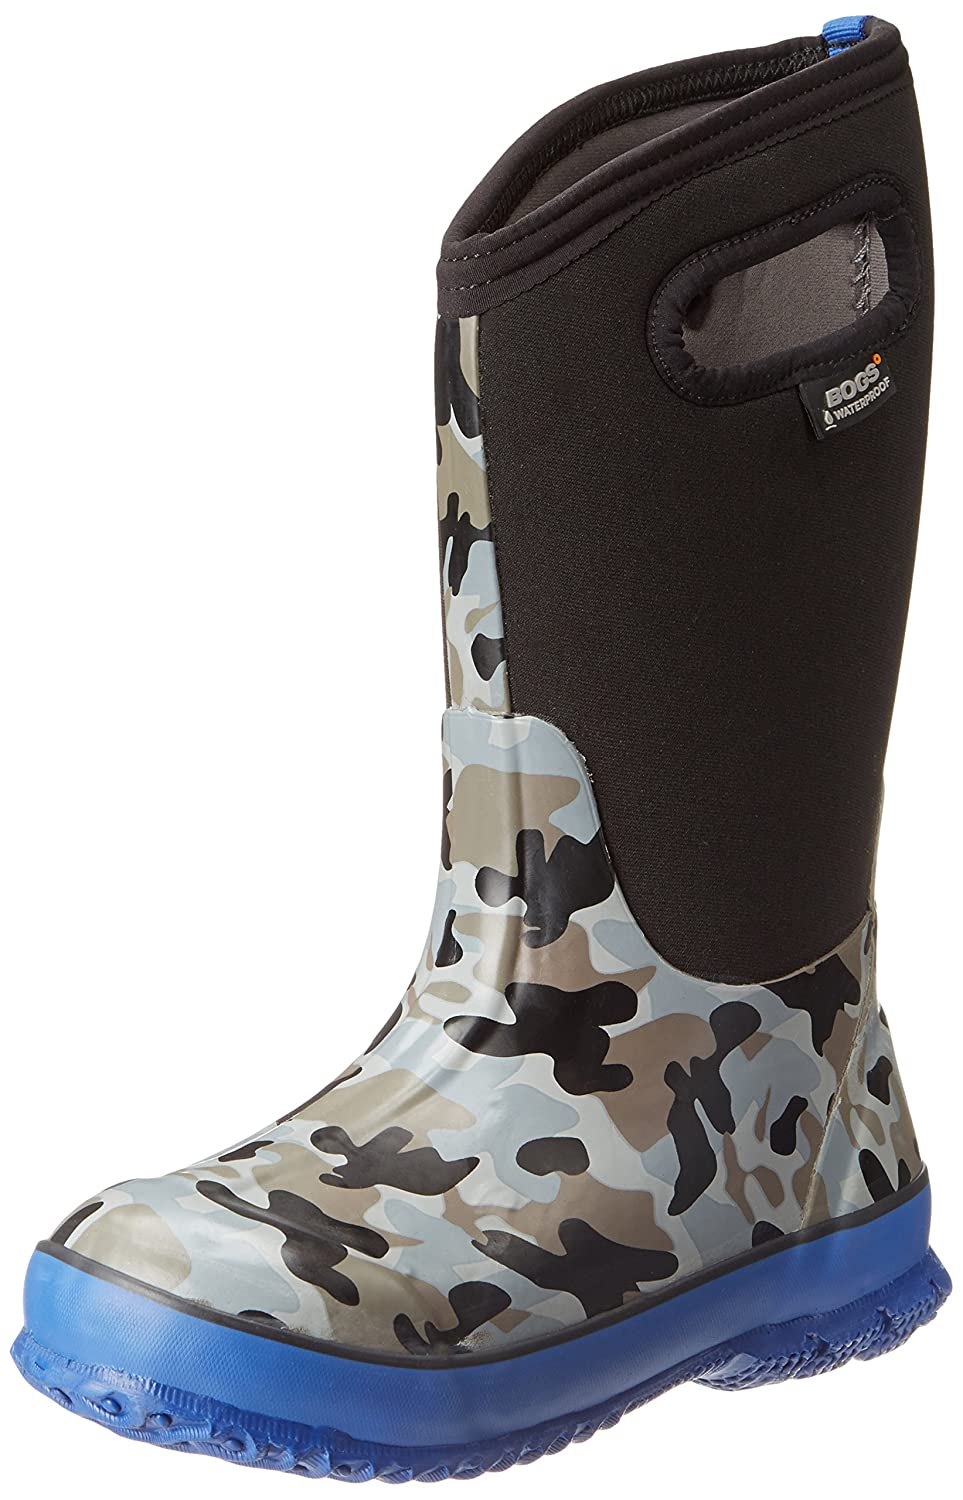 Bogs Kids' Classic High Waterproof Insulated Rubber Neoprene Rain Boot, 71563-492-10